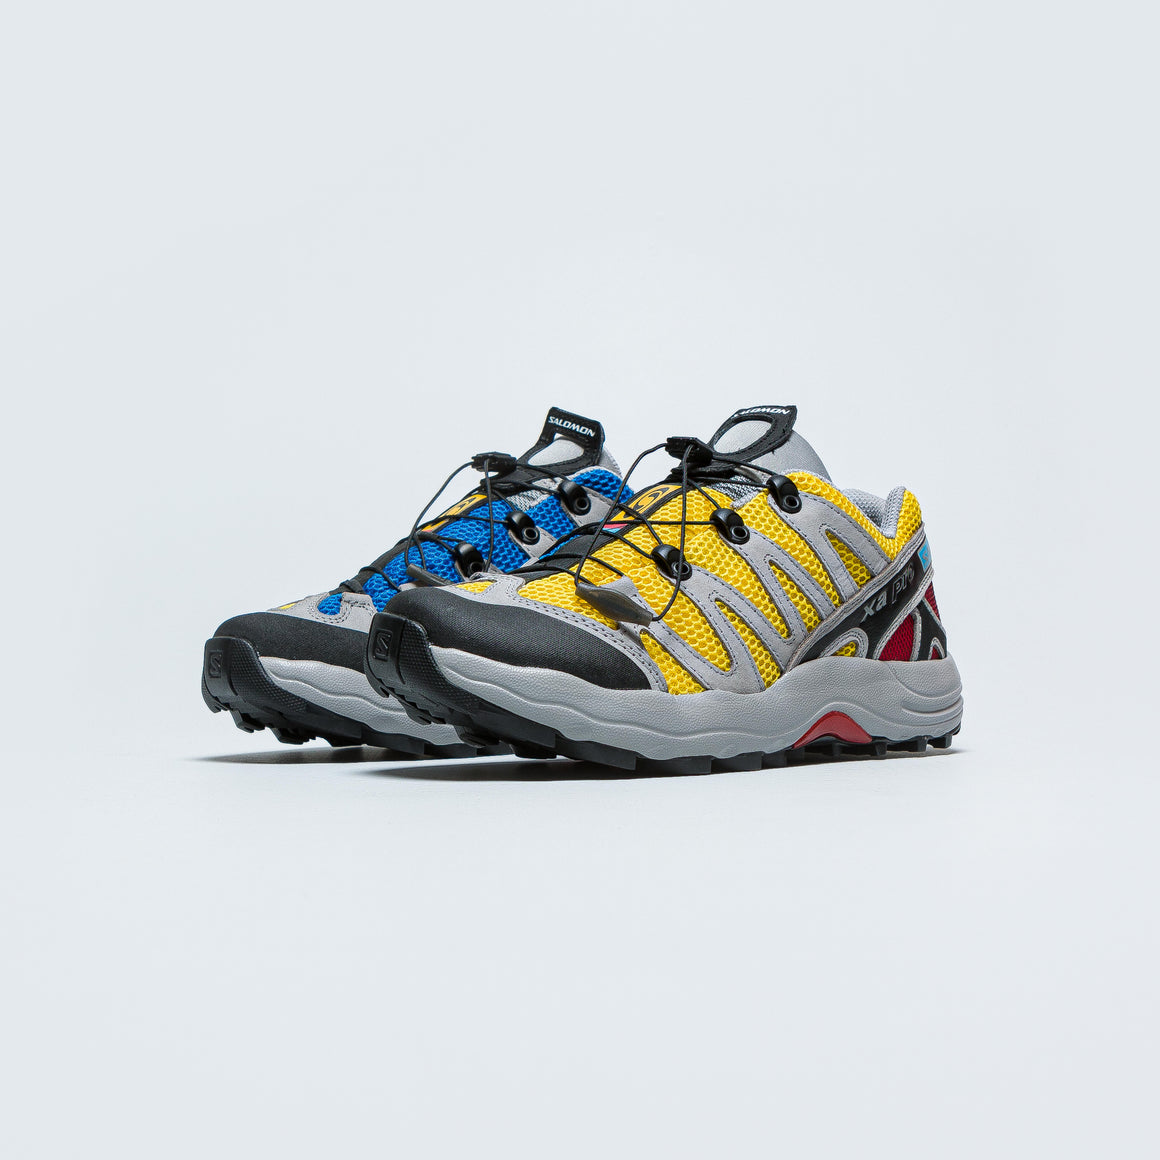 Salomon - XA Pro 1 Advanced - Sulpher/Indigo Bunting/Goji Berry - Up There